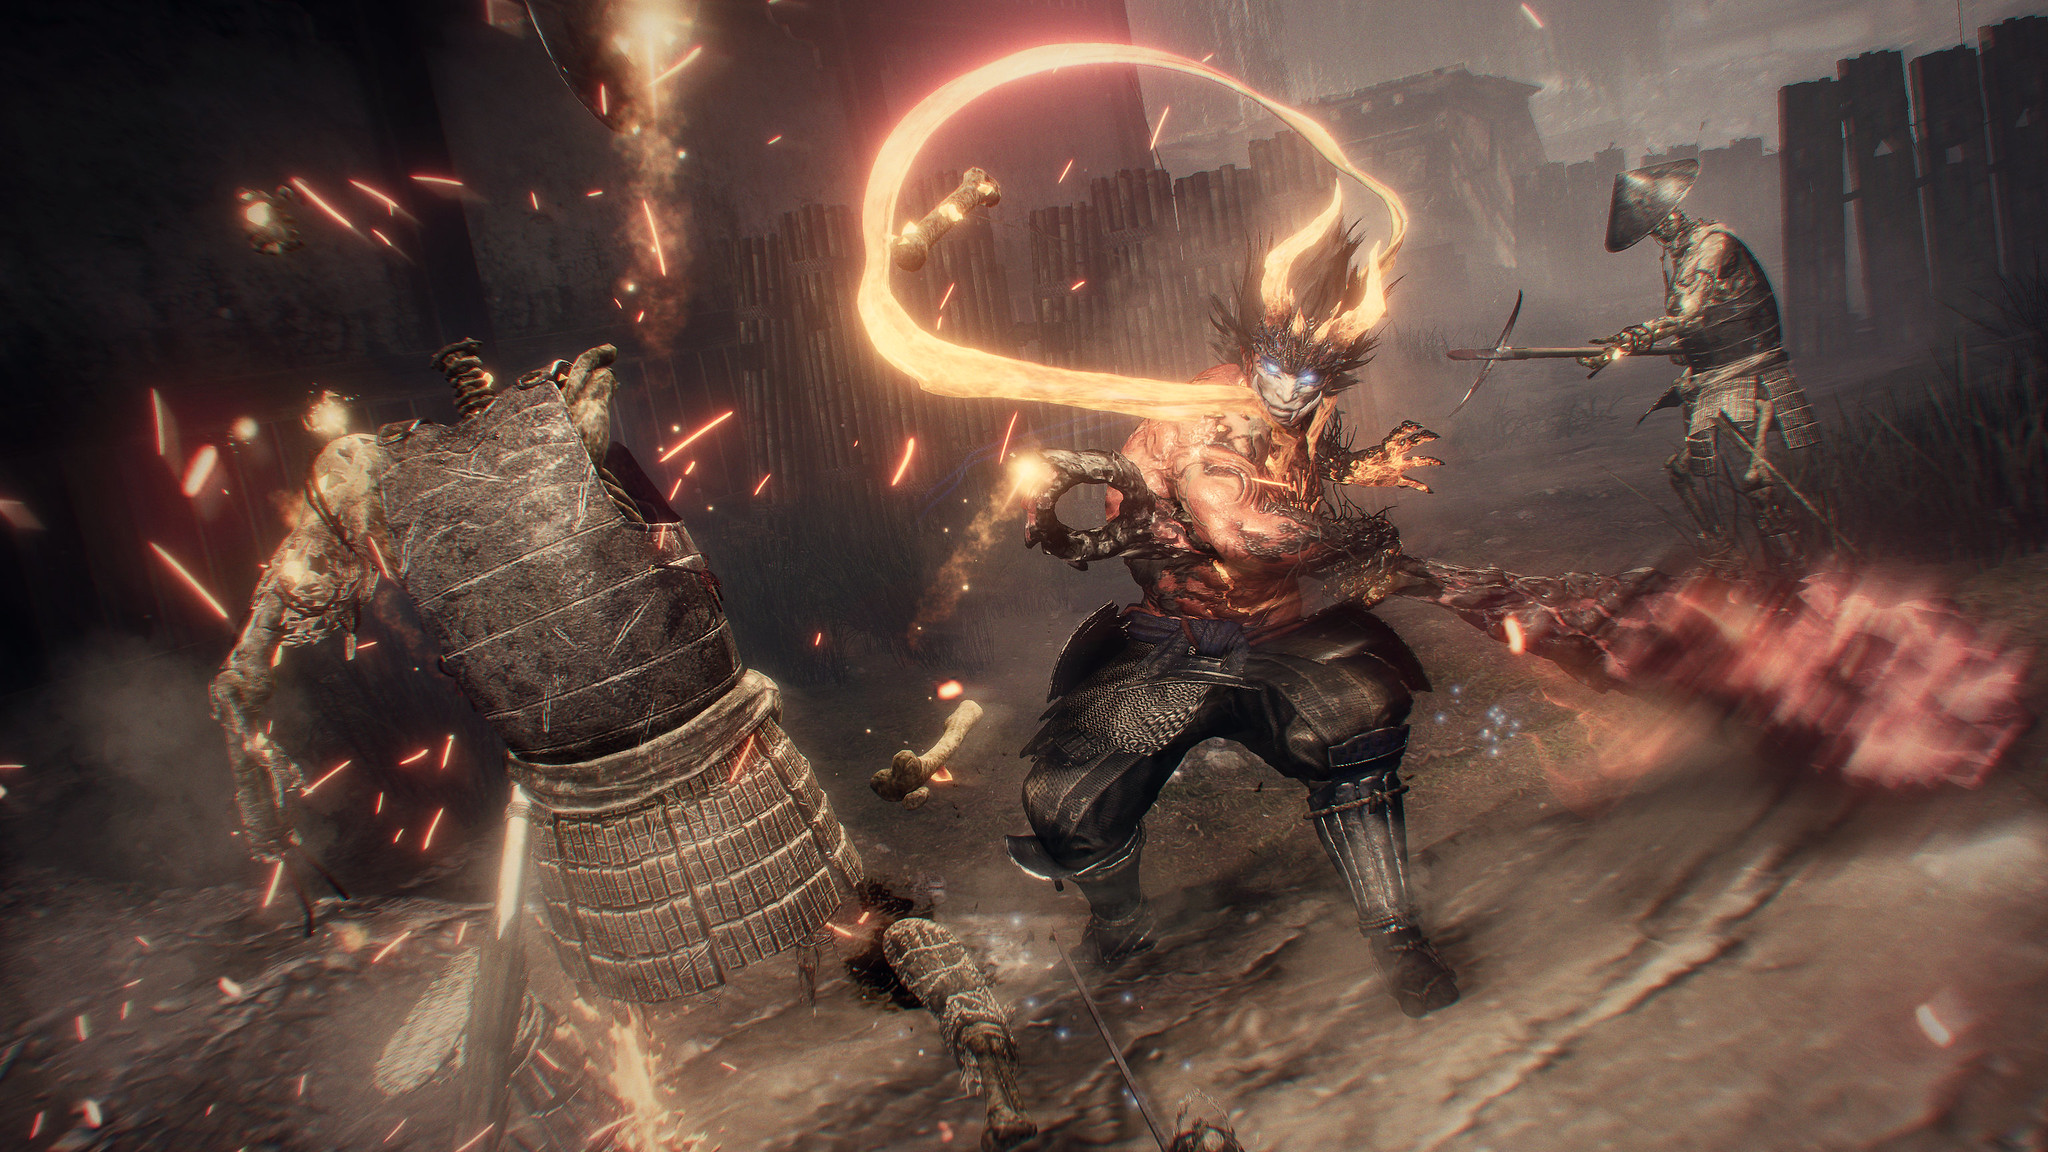 Both Nioh games are coming to PS5 in 2021 in 4K and 120 FPS screenshot